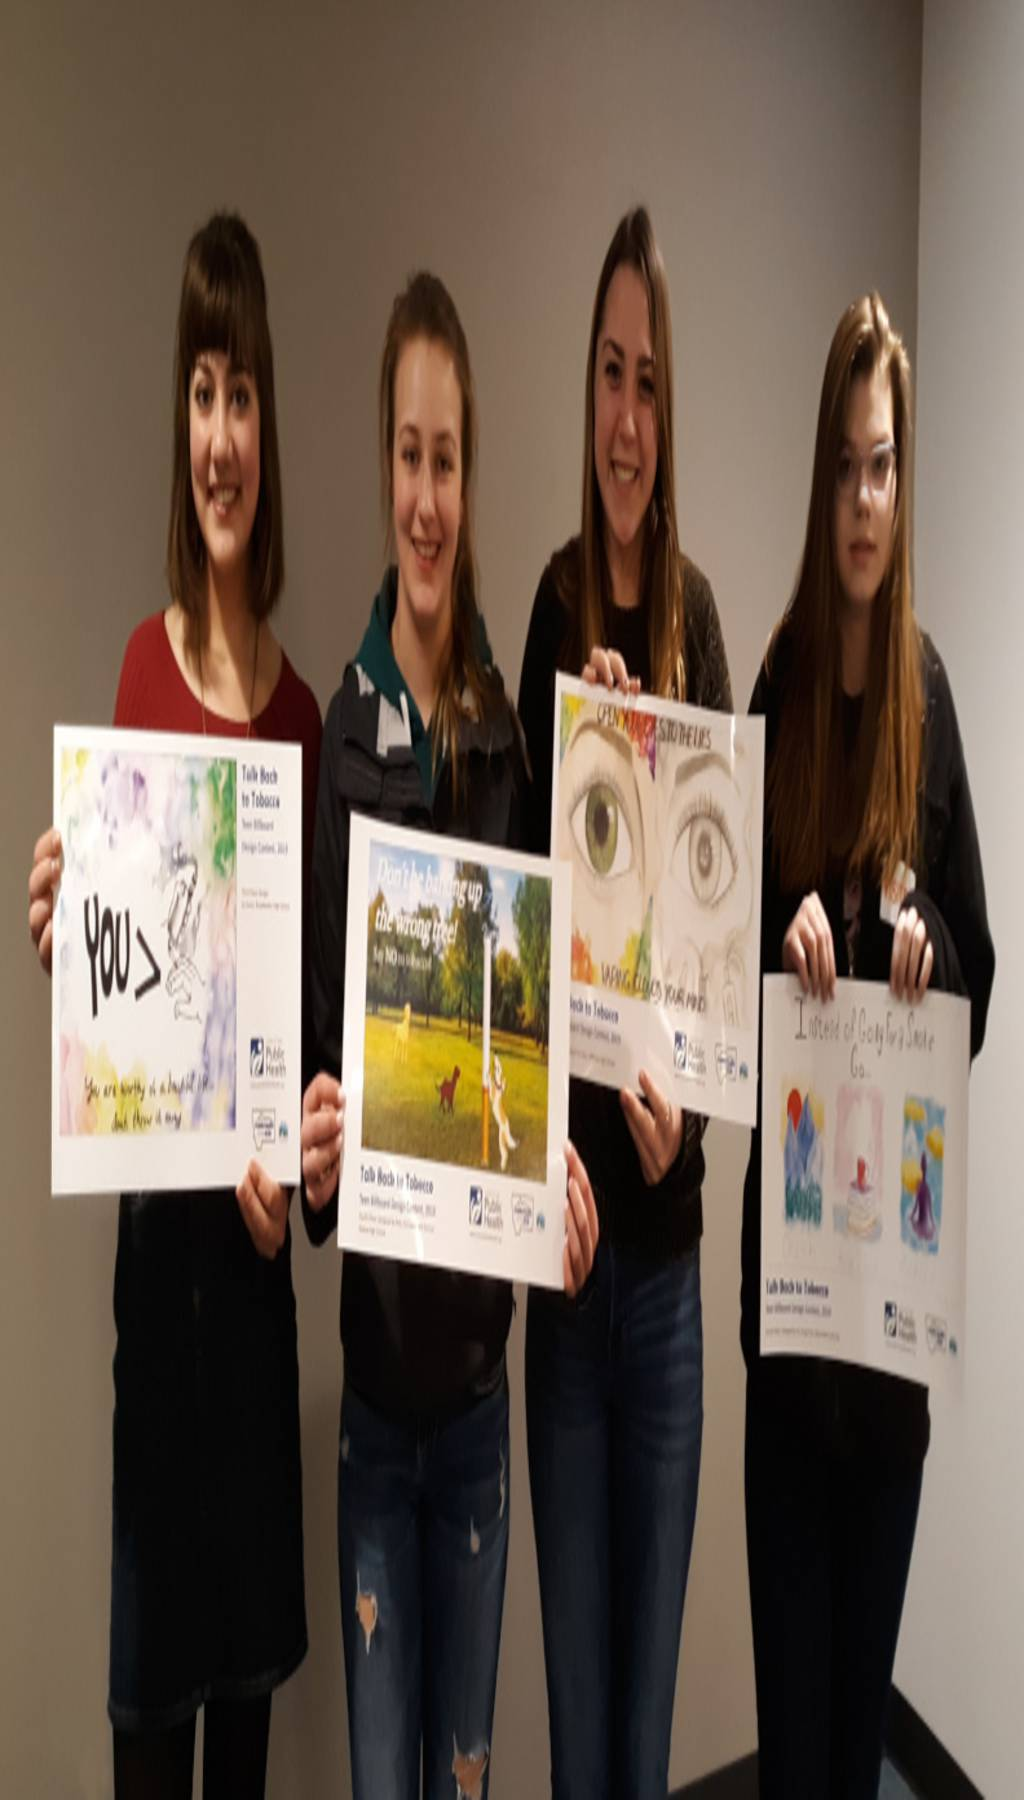 Winners of the 2019 Teen 'Talk Back to Tobacco' Billboard Design Contest: from left, Scout Lynde, Broadwater High School; Emmalee Madden, Helena High School; Josie Marks, Jefferson High School; and Ali Heimbach, Project for Alternative Learning